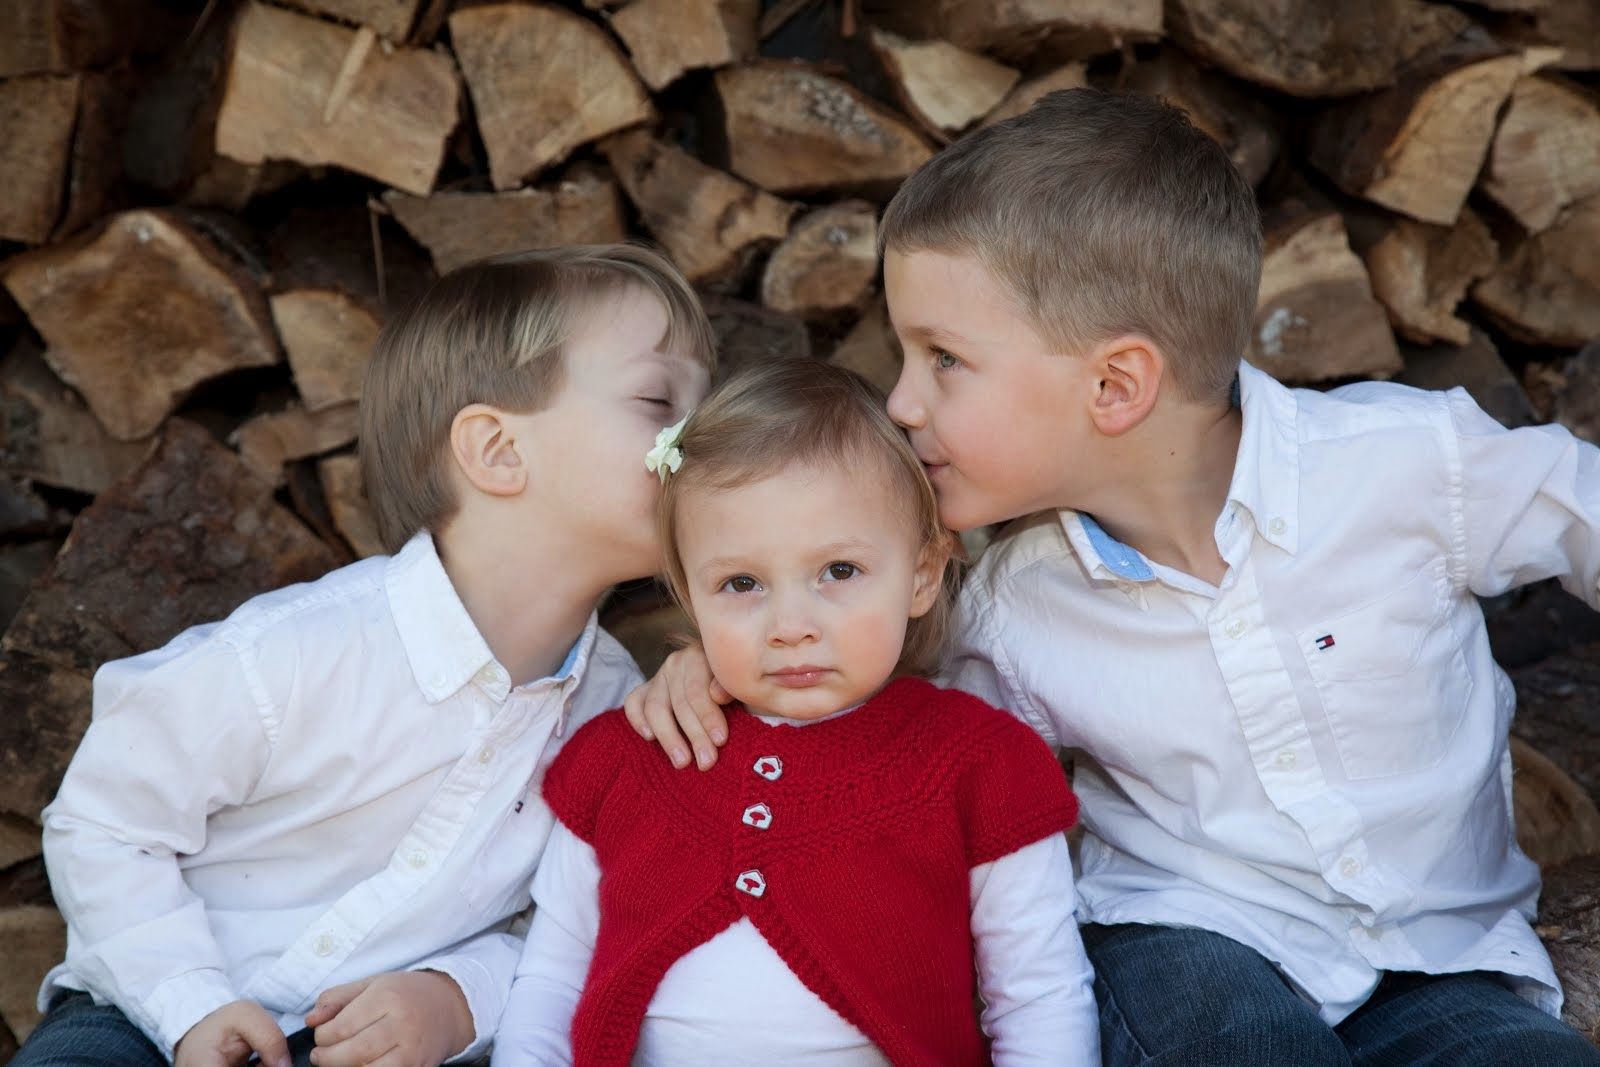 Our Nephews and Niece